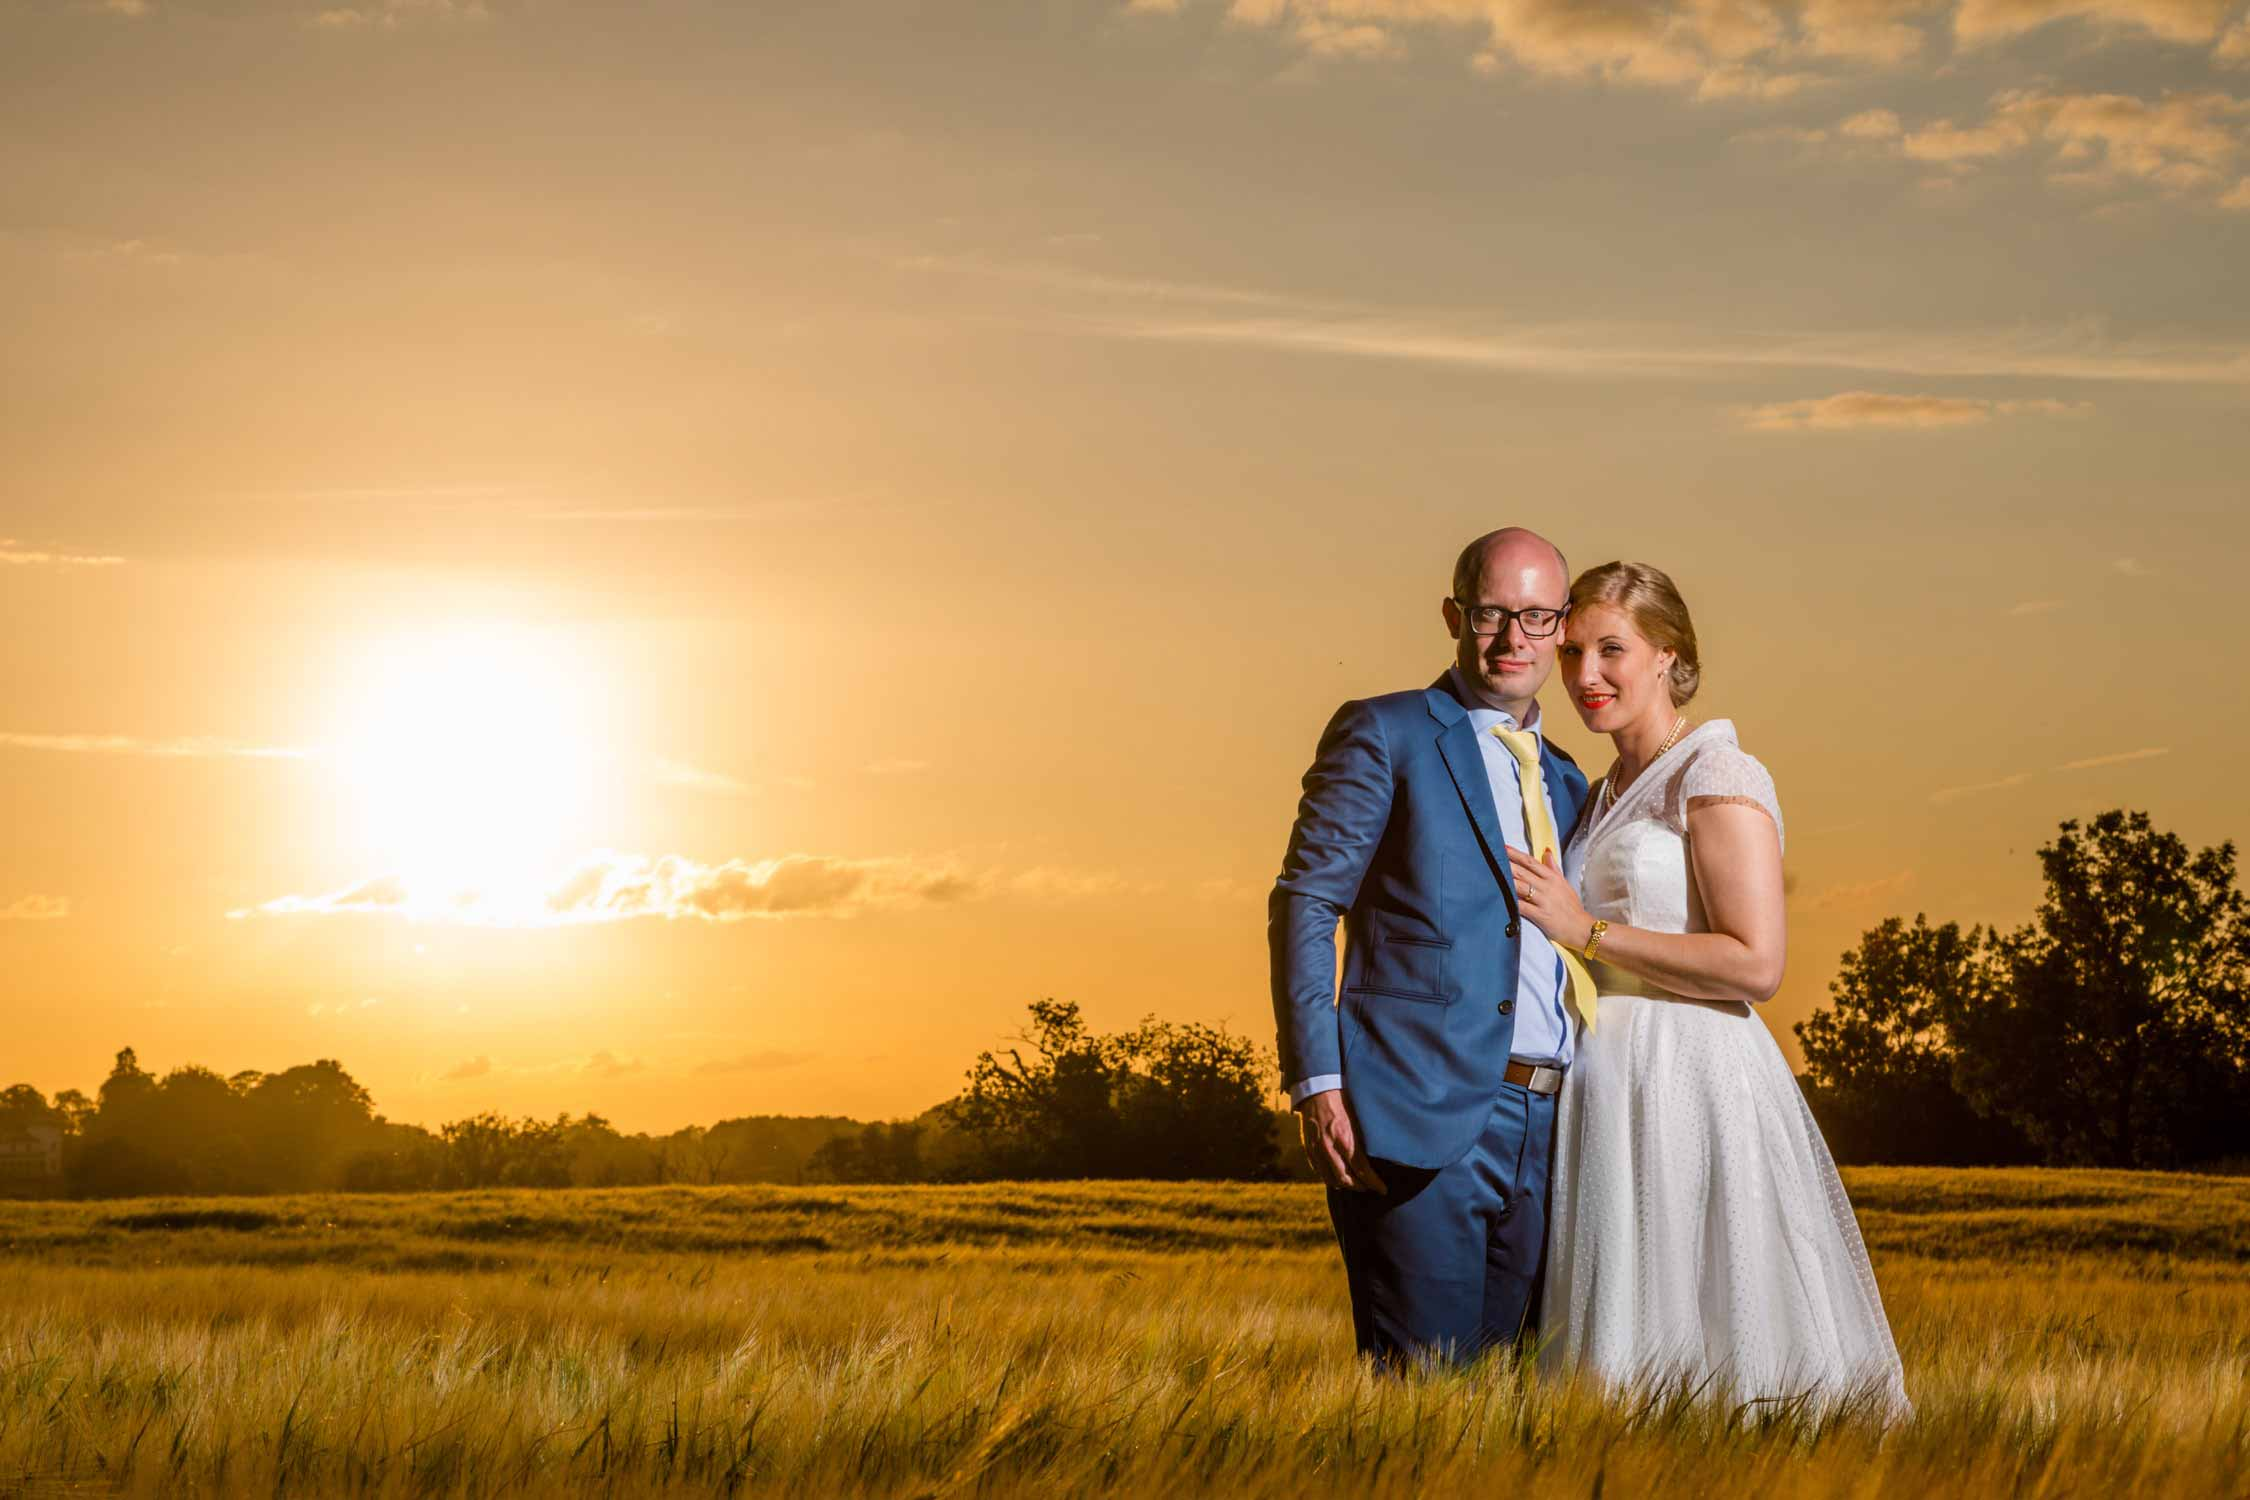 Wedding Photographer Shropshire - Kim Shaw